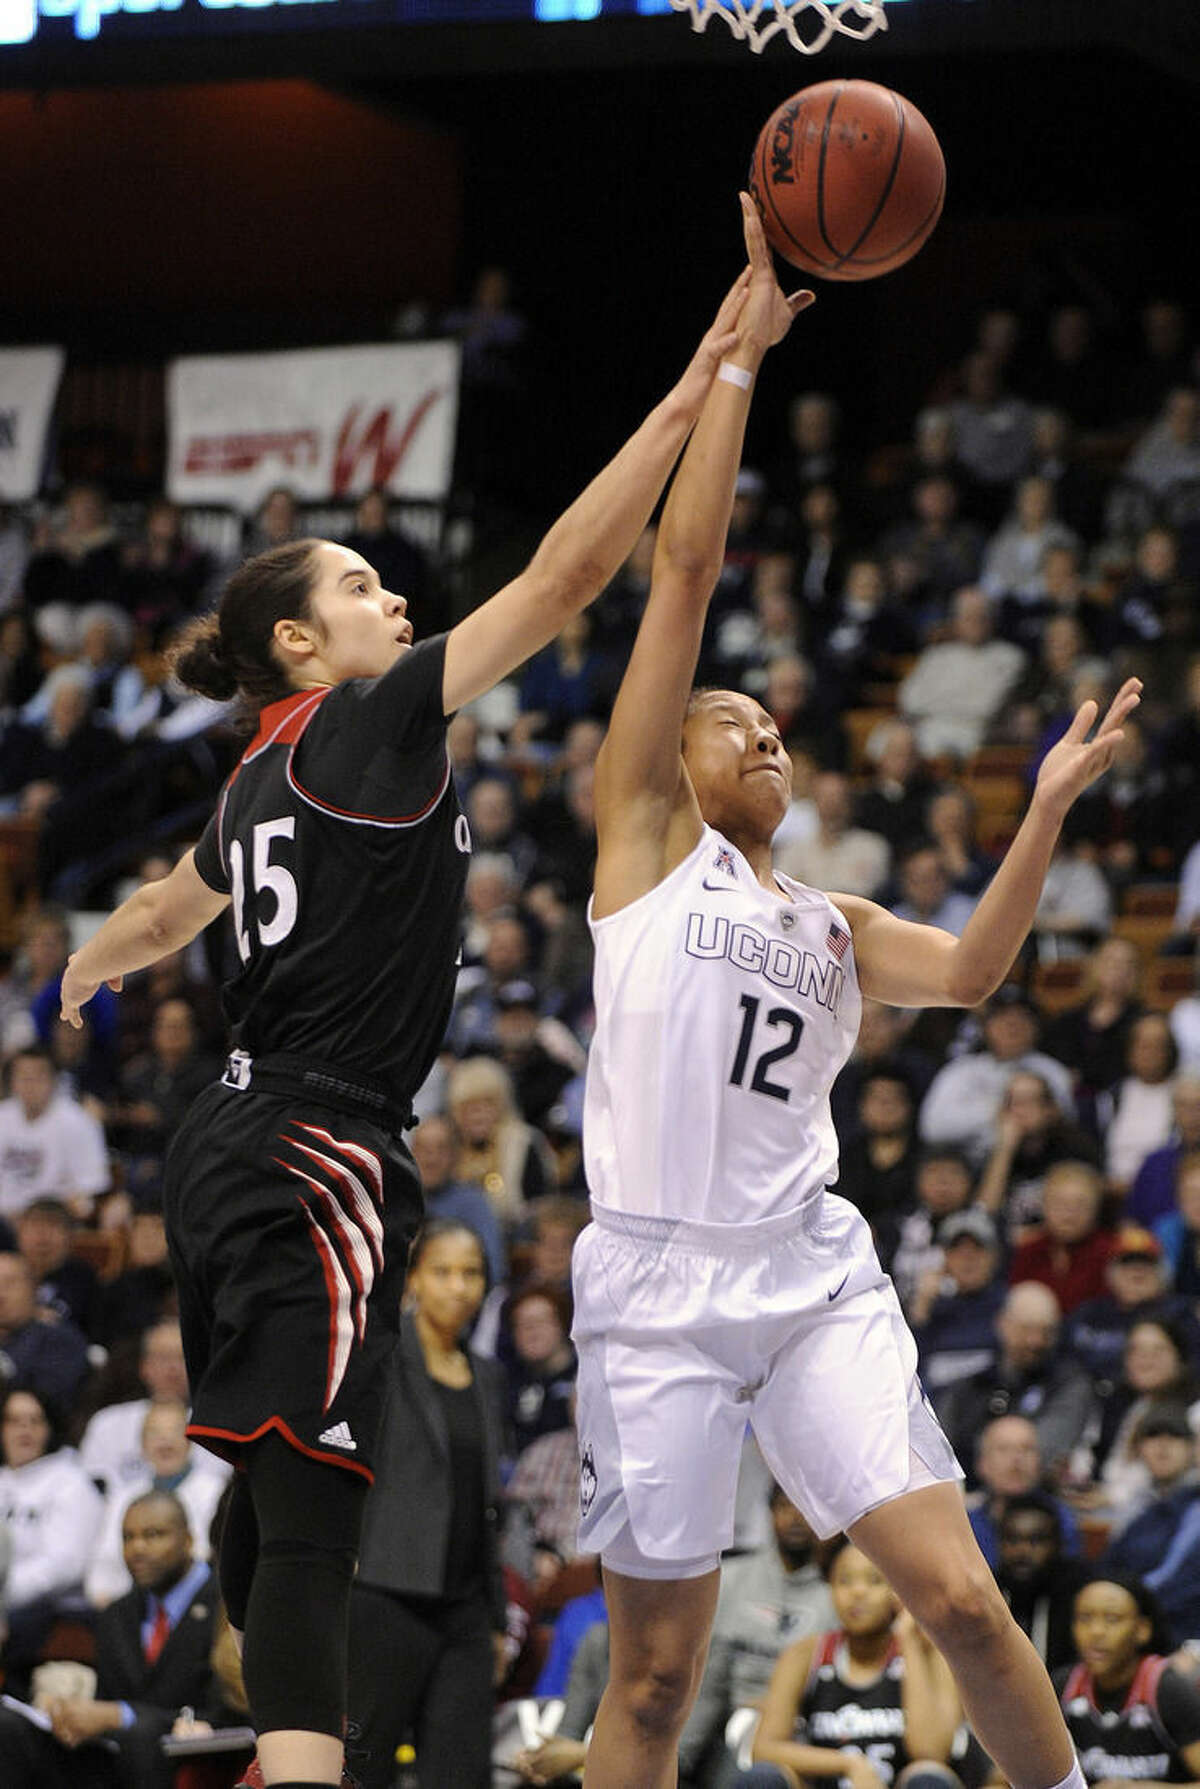 Connecticut's Saniya Chong (12) drives past Cincinnati's Chelsea Jamison (25) during the first half of an NCAA college basketball game in the quarterfinals of the American Athletic Conference tournament in Uncasville, Conn., on Saturday, March 7, 2015. (AP Photo/Fred Beckham)